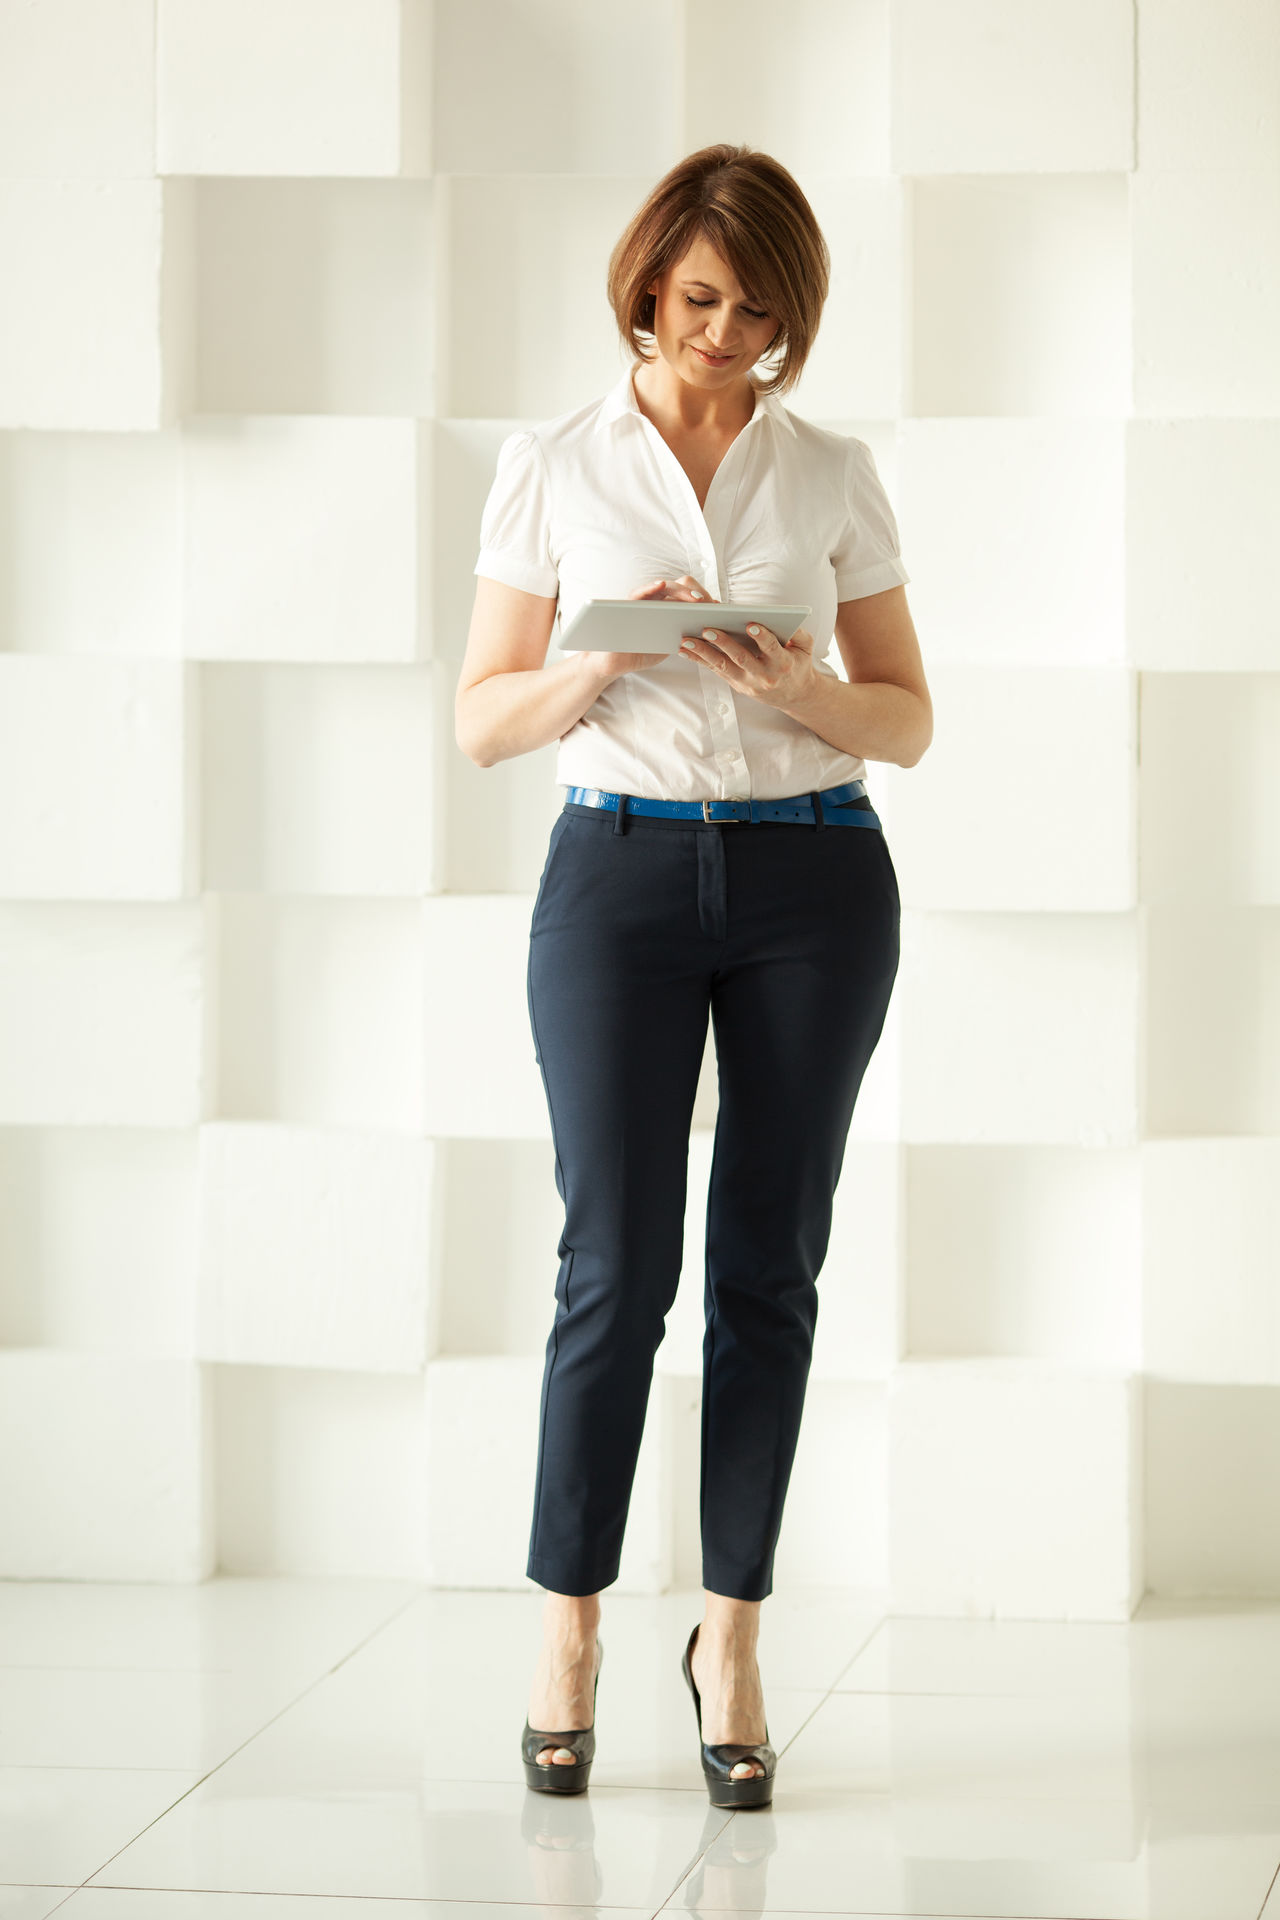 Smiling businesswoman standing against white wall while looking at tablet in her hand Business Businesswoman Caucasian Corporate Elegant Elegante Facial Expressions Gadget Hands Holding Light Hair Manager Office Short Hair Smiling Sunlight Tablet Vertical White Young